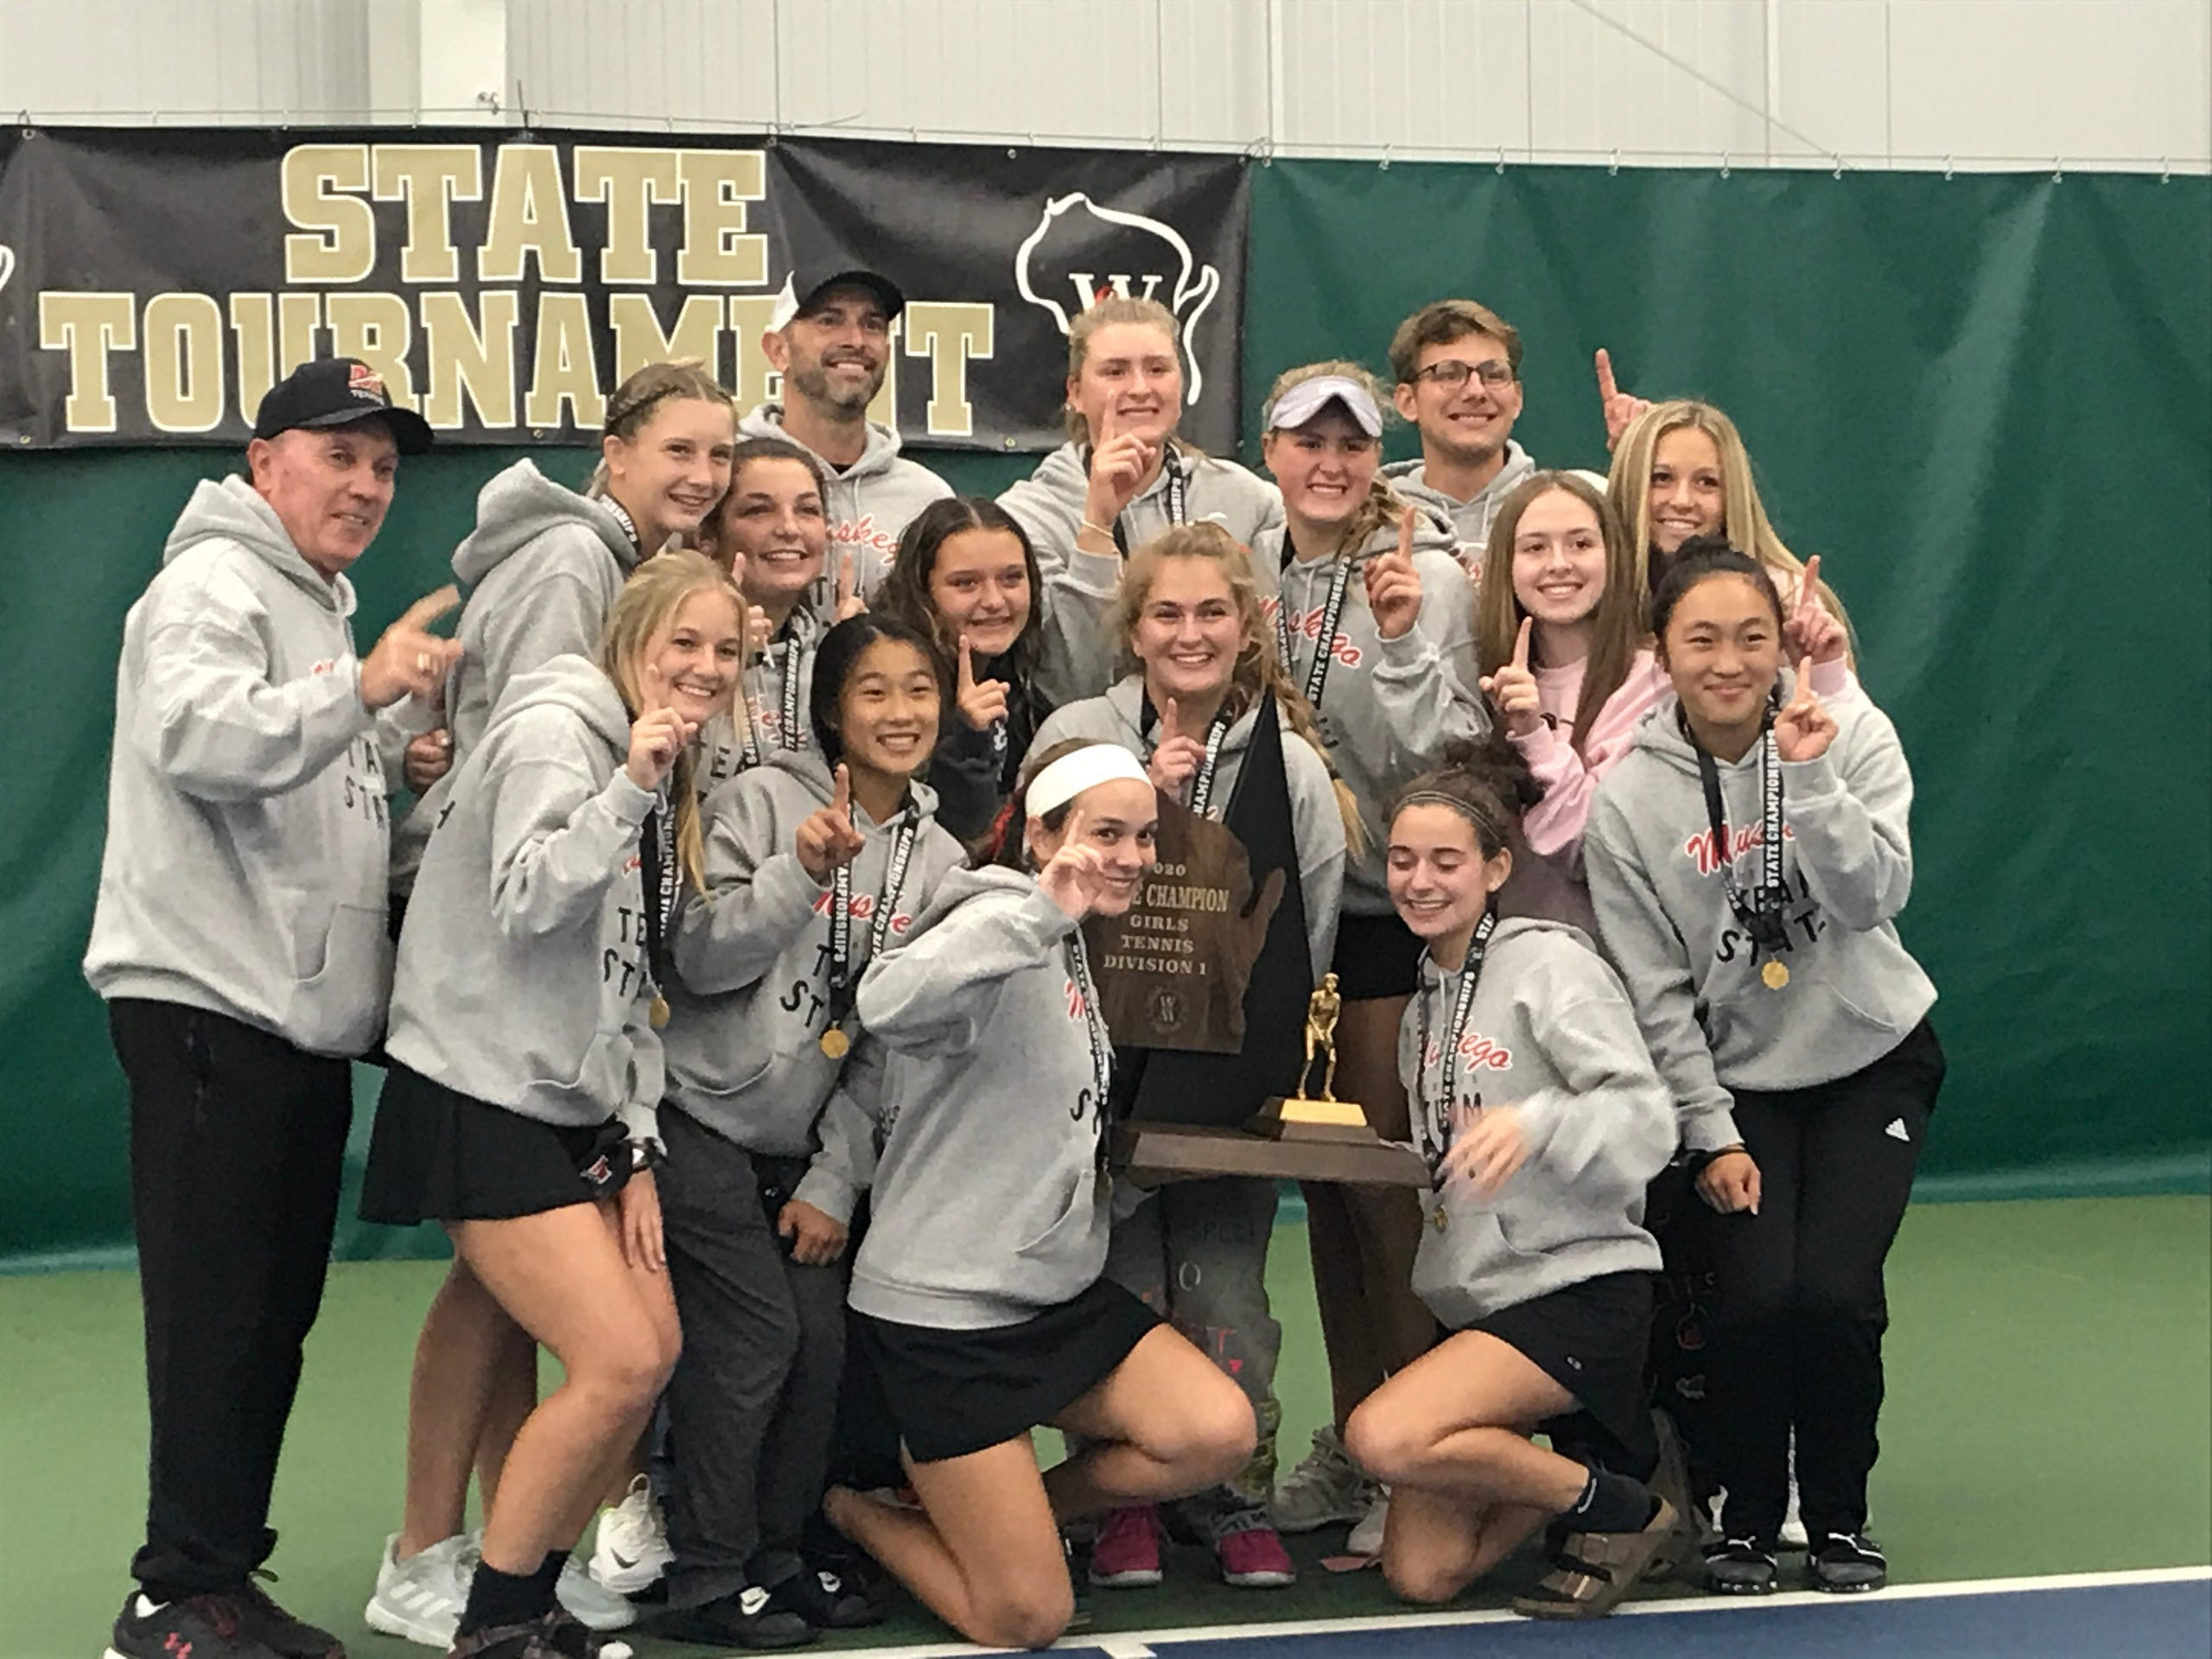 Photos: WIAA girls state team tennis tournament